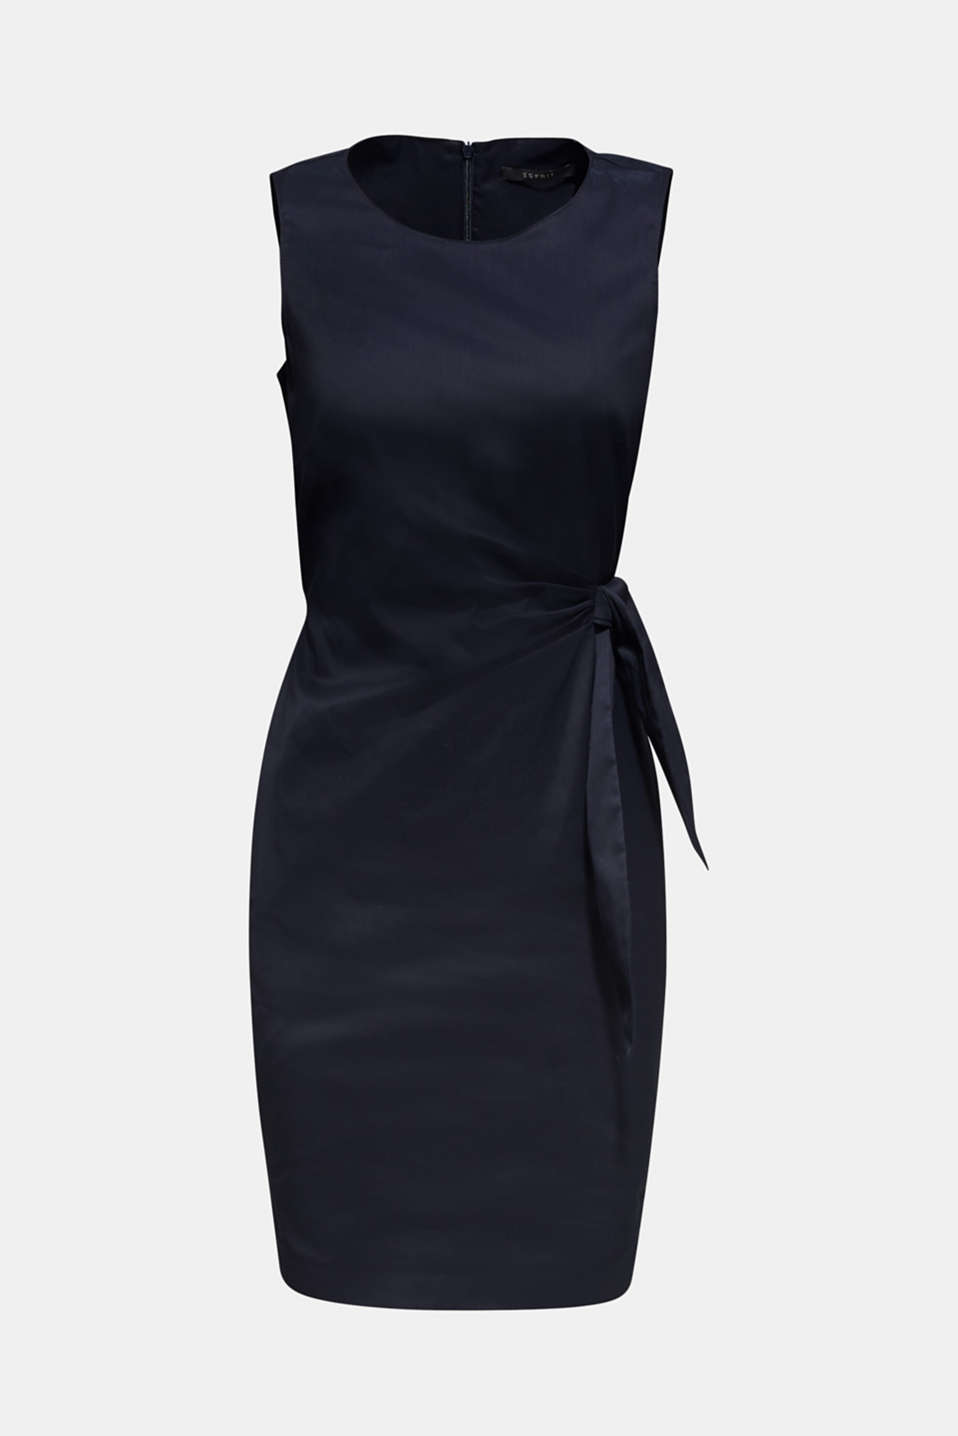 This chintz sheath dress with a draped bow at waist height is the perfect essential with a certain je ne sais quoi!